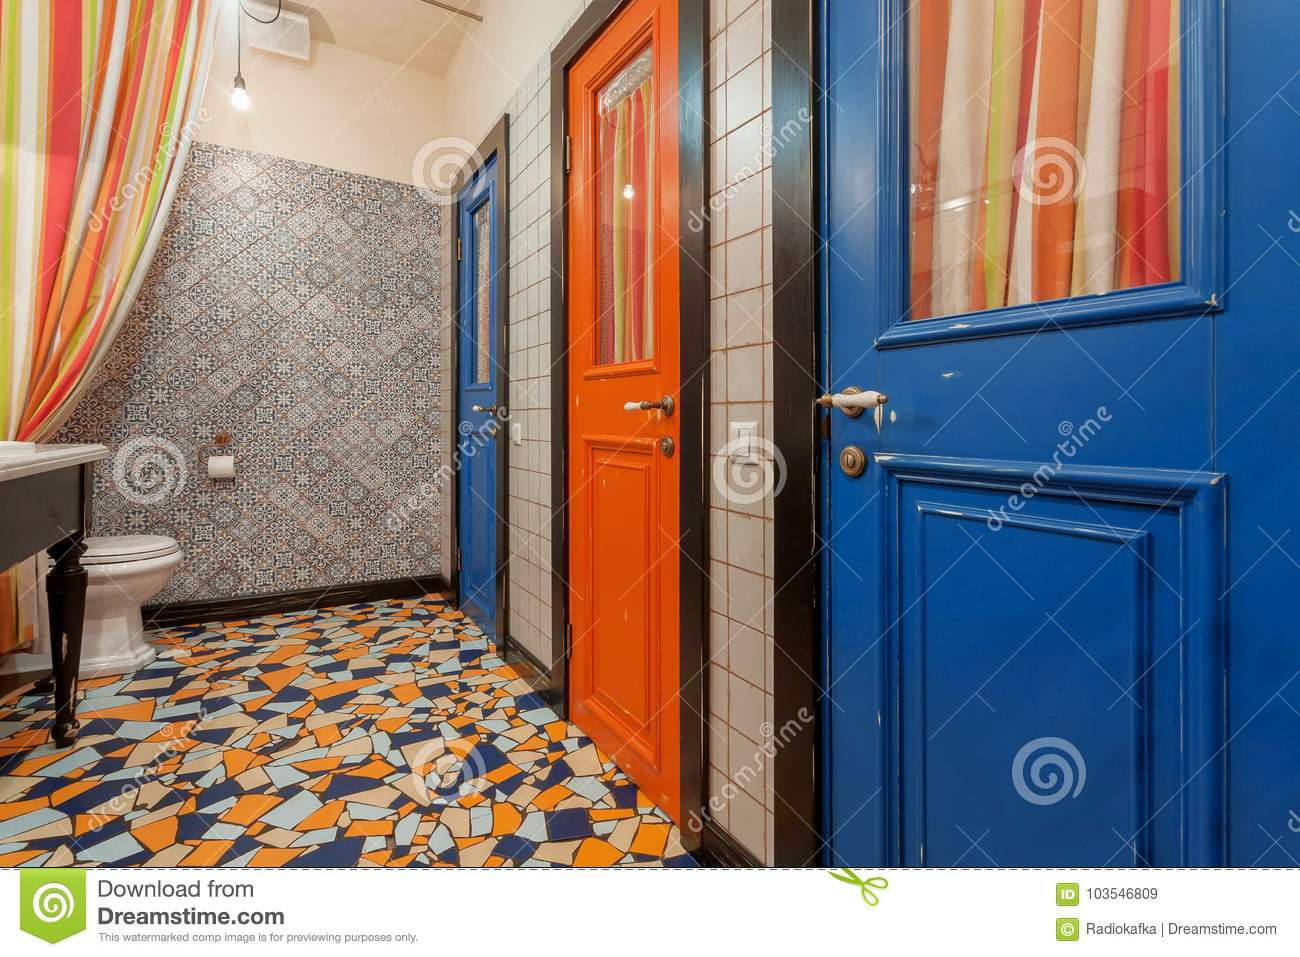 Interior Of Vintage Style Toilet Room With Old Wooden Doors To Bathroom.  Blue And Red